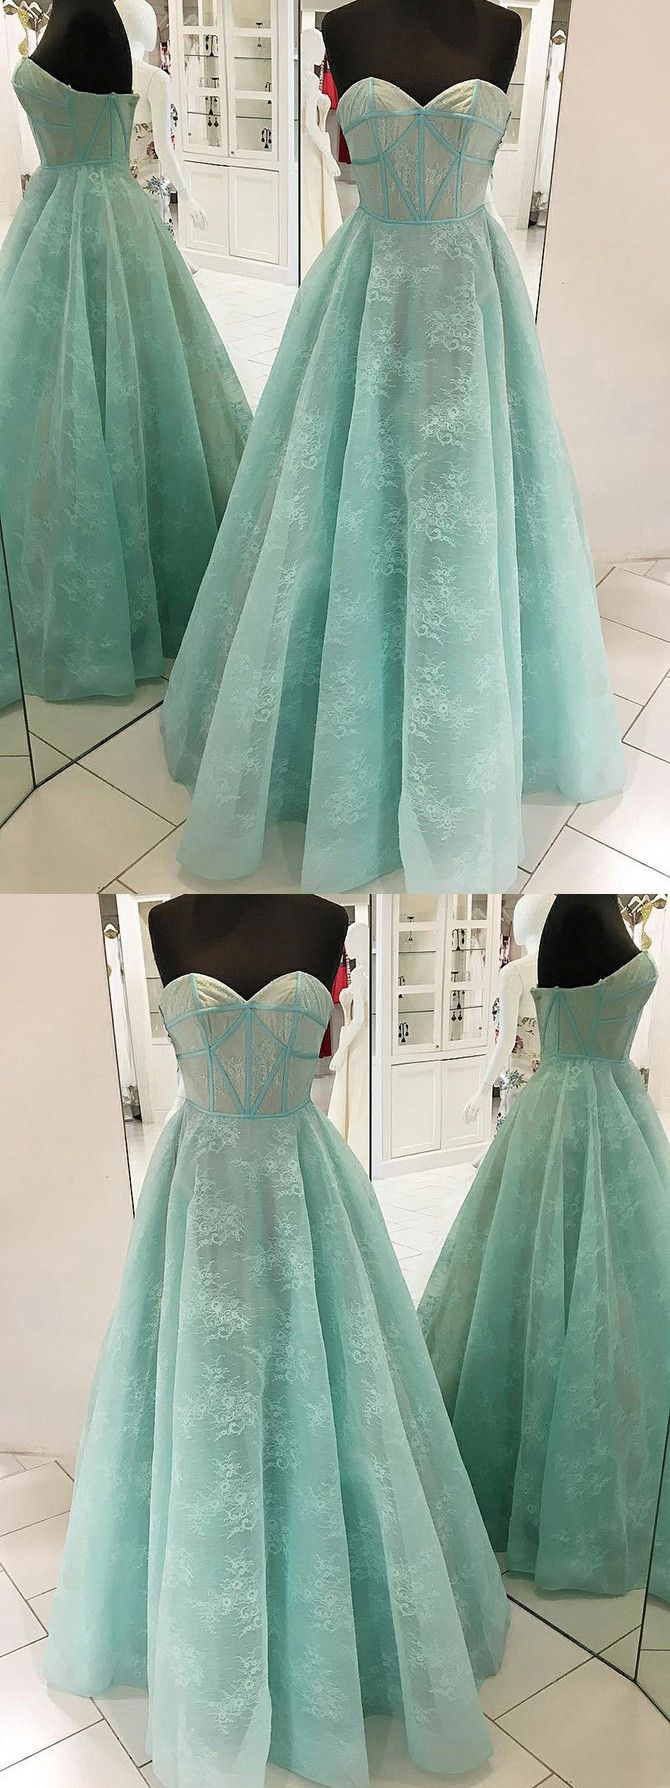 chic aline sweetheart prom dresses with lace long prom dress